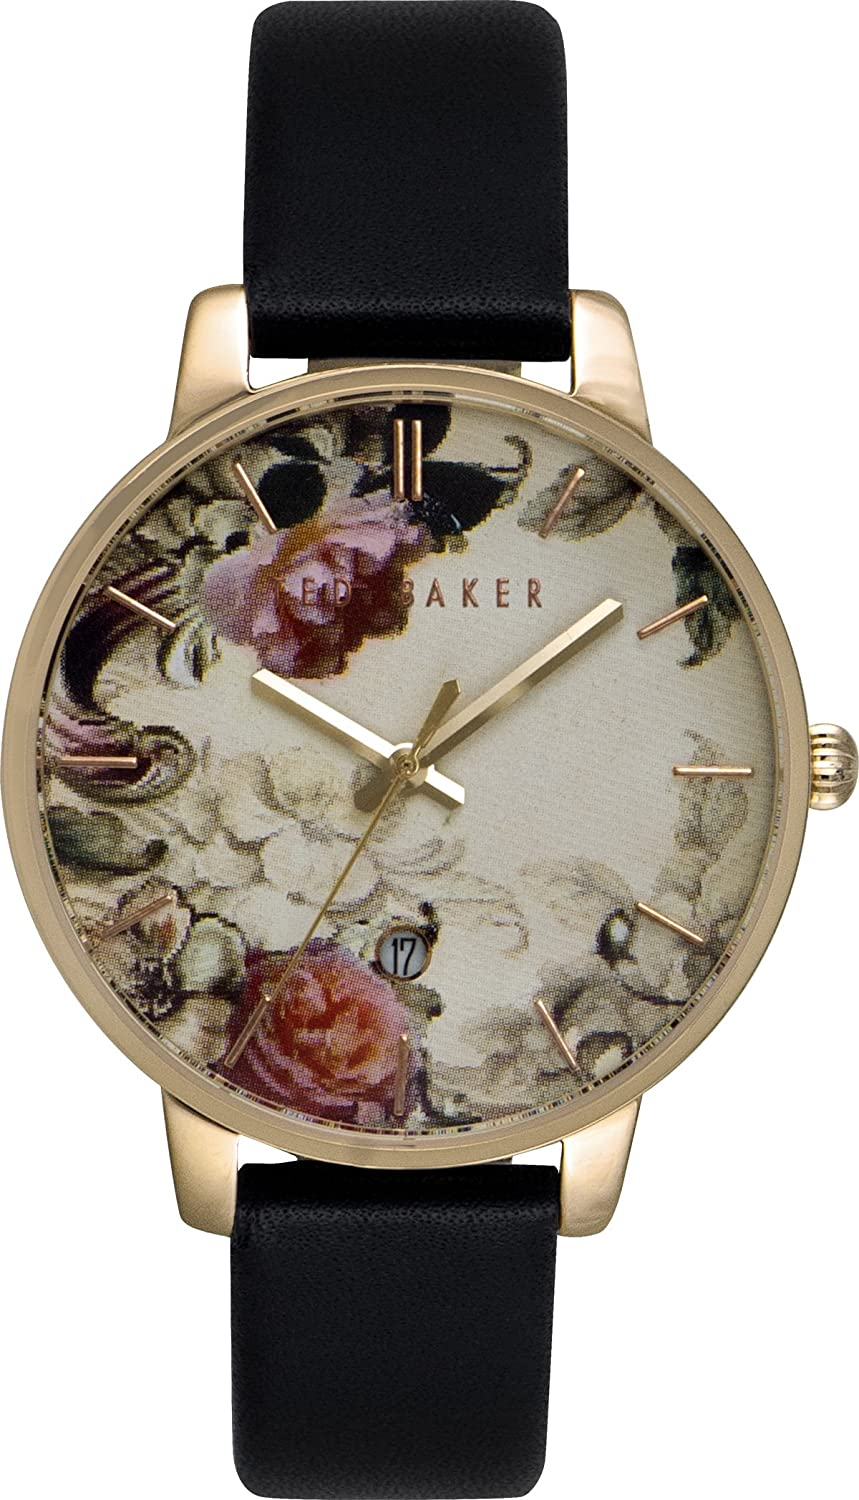 TED BAKER LADIES STRAP WATCH